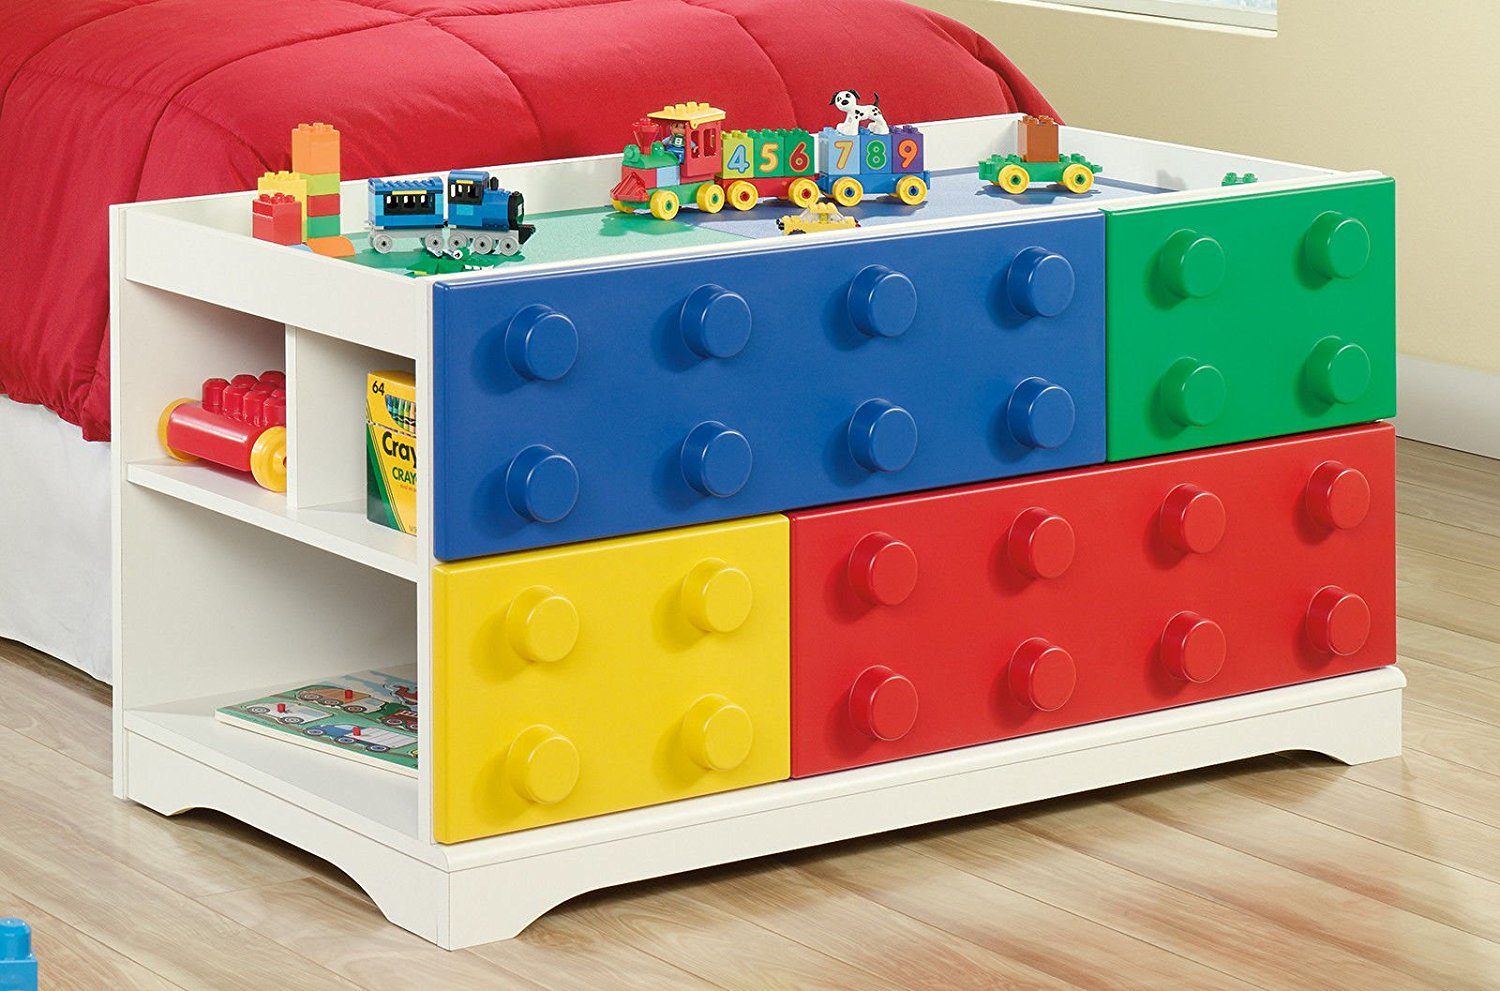 Sauder Furniture 417932 Primary Street Children Kids Toy Block Lego Play Table - Great for Childrens & Buy Sauder Furniture 417932 Primary Street Children Kids Toy Block ...